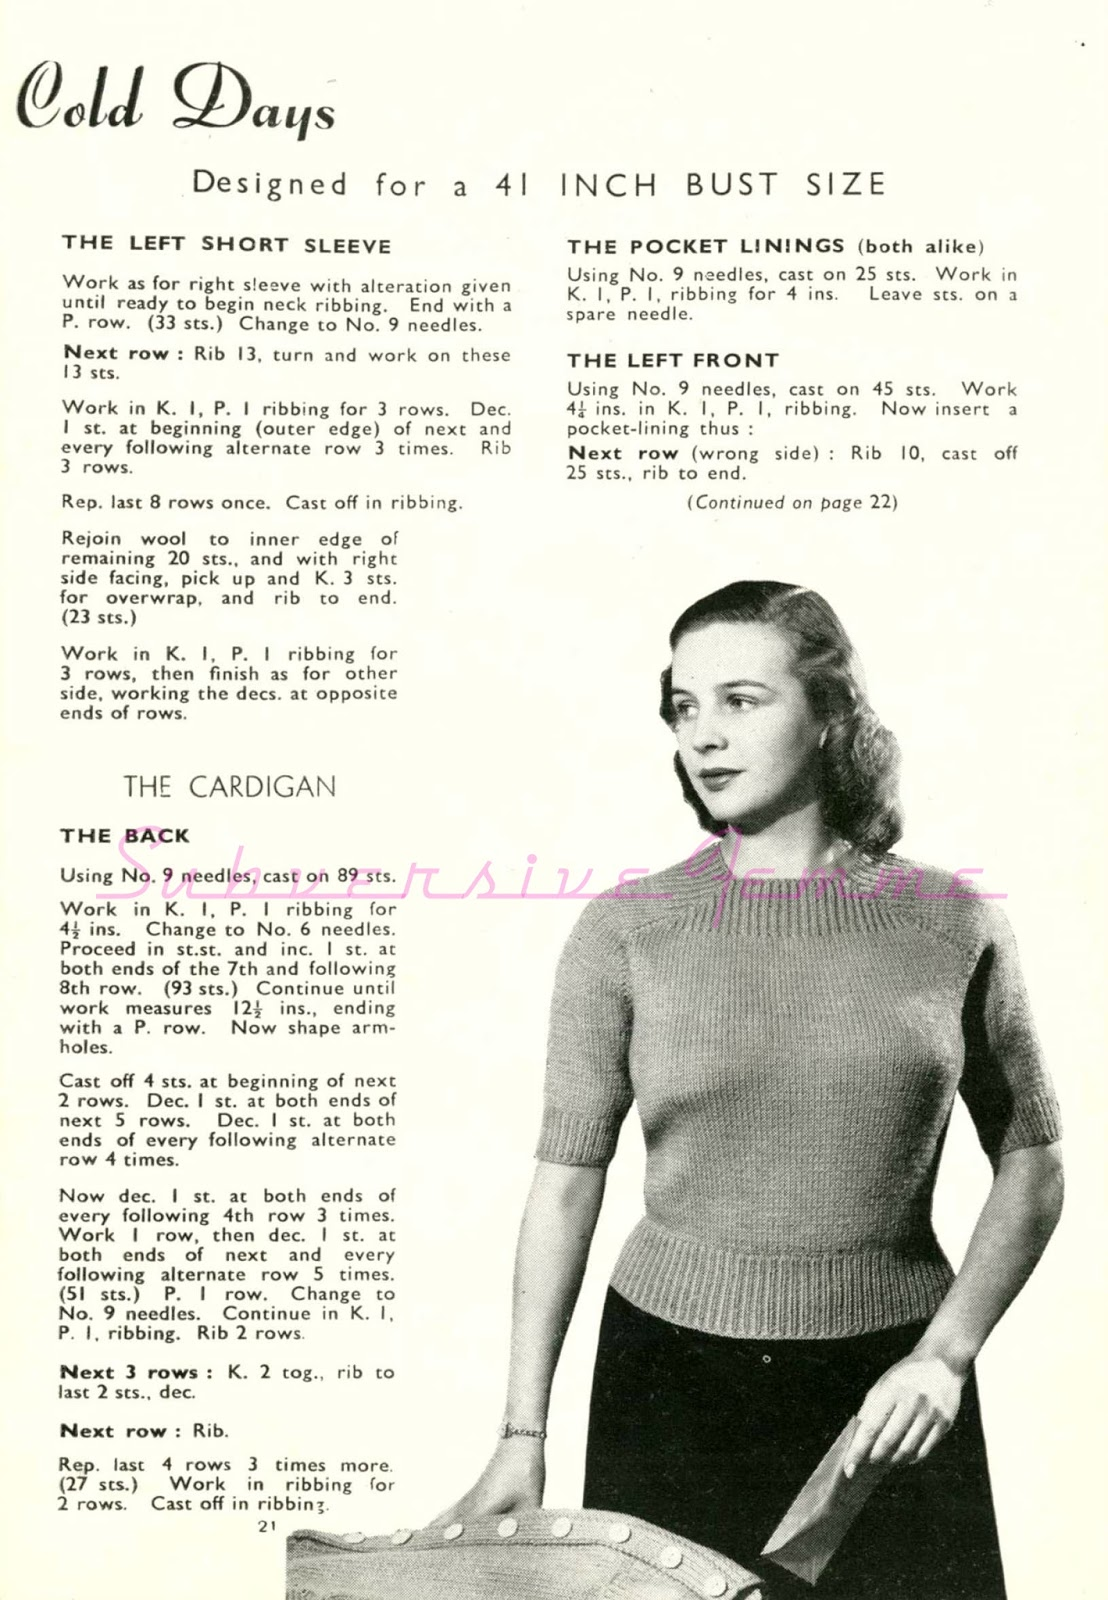 Curvy Month Pattern Six – Cosy for Cold Days, c. 1940s – Subversive ...